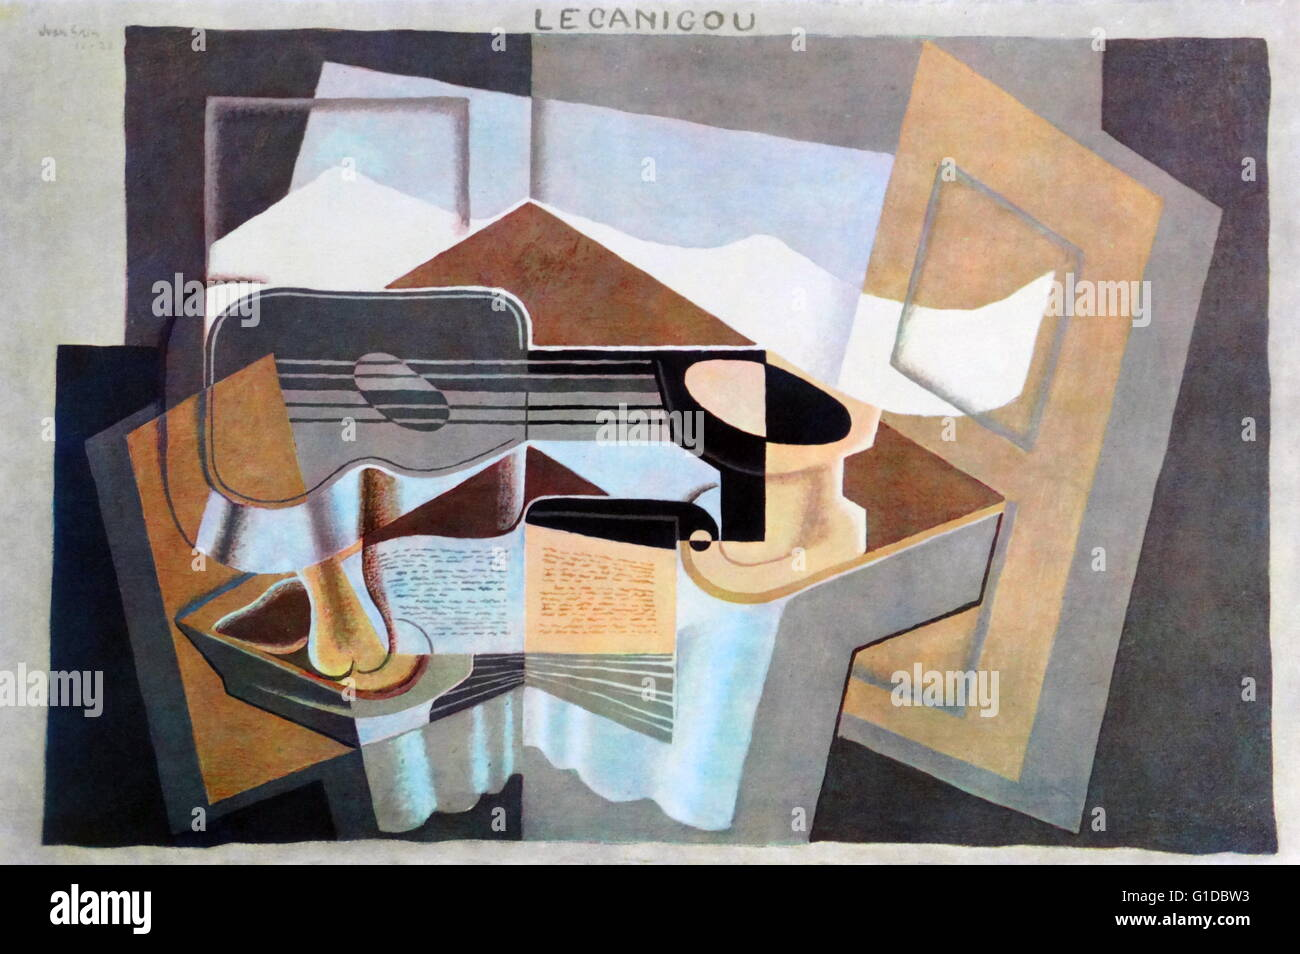 le canigou 1921, by Juan Gris (1887 –1927), Spanish painter and sculptor connected to the innovative artistic genre - Stock Image